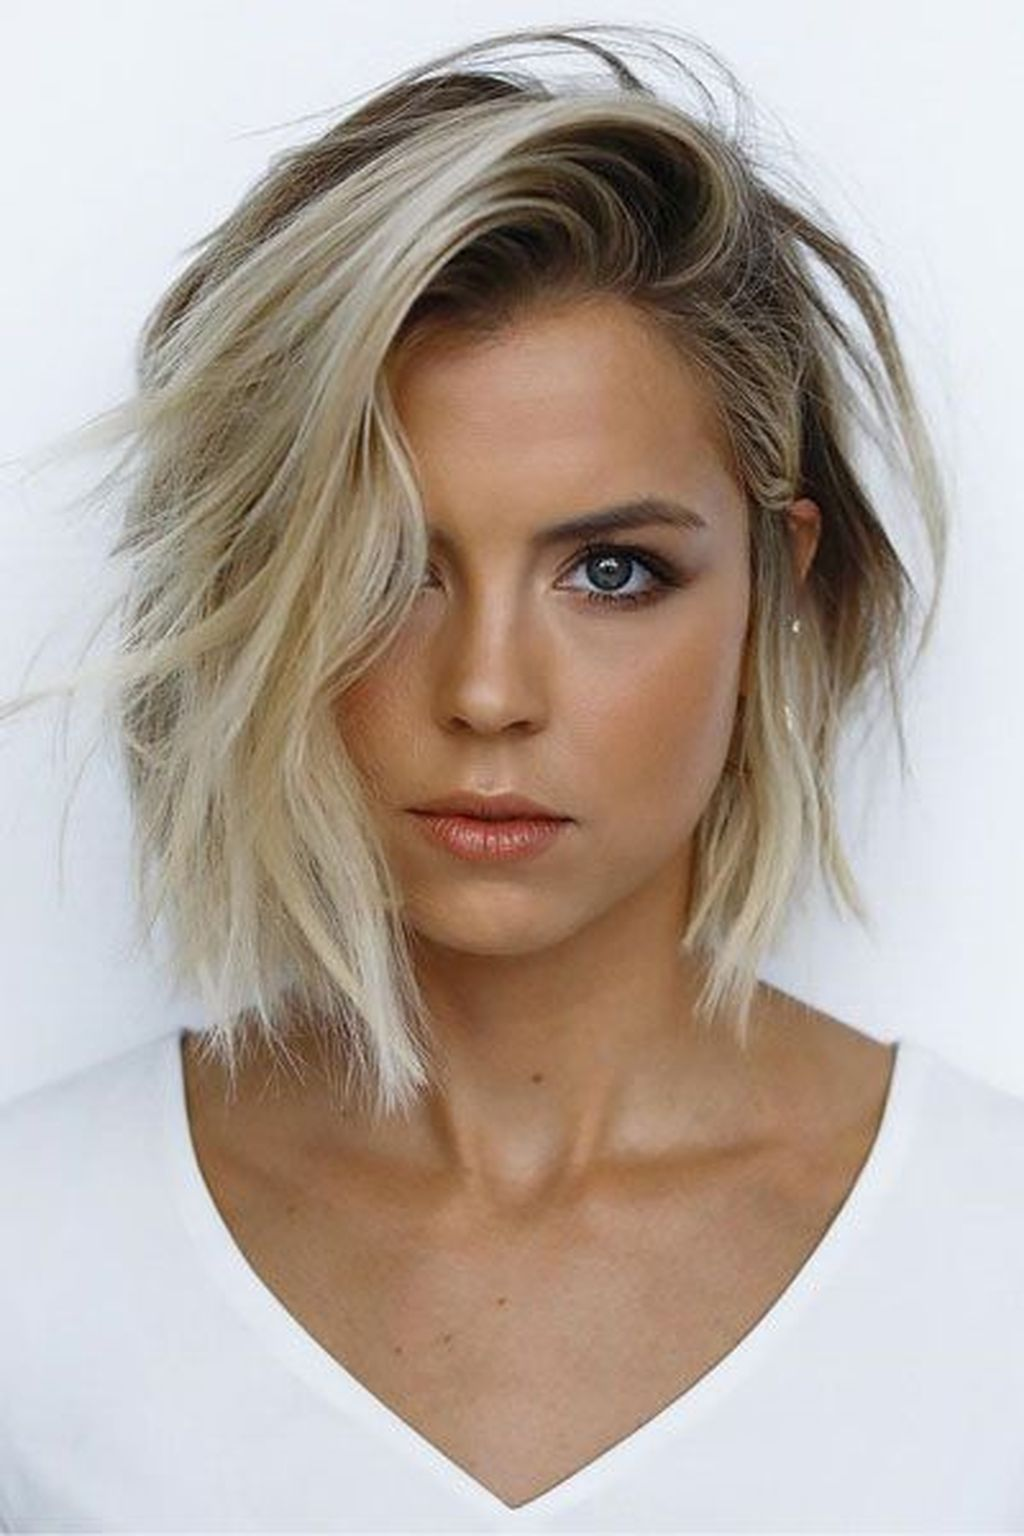 20 Magnificient Hairstyles Ideas For Short Hair That Trendy Now Thick Hair Styles Thin Fine Hair Haircuts For Thin Fine Hair